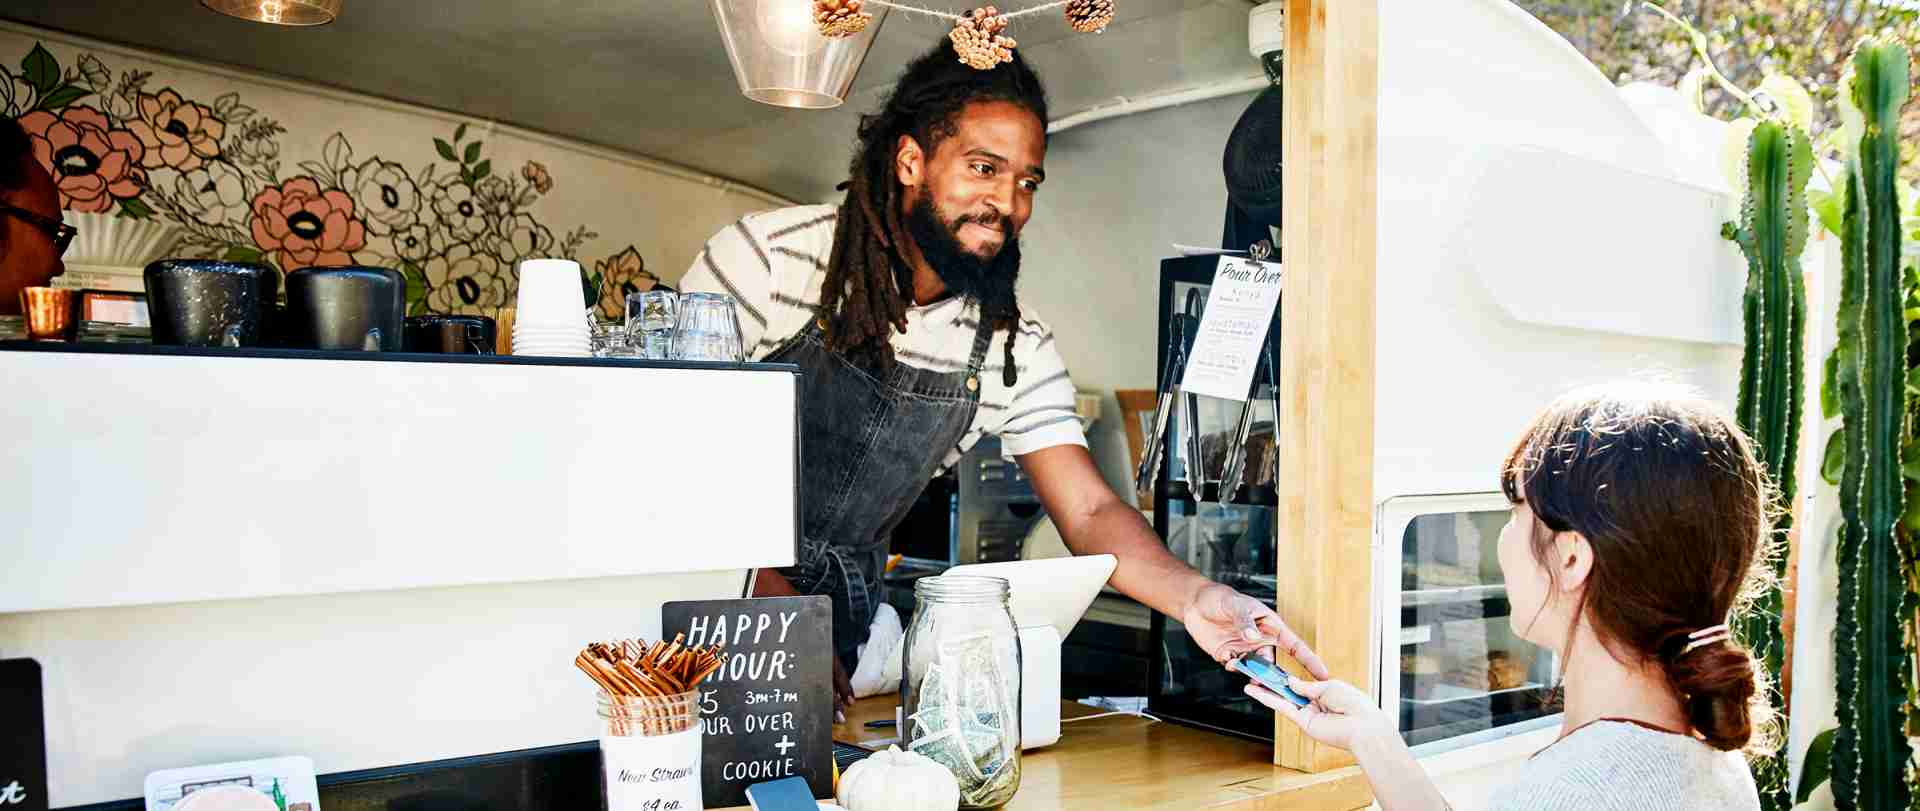 smiling african american man working in a food truck hands young woman a credit card